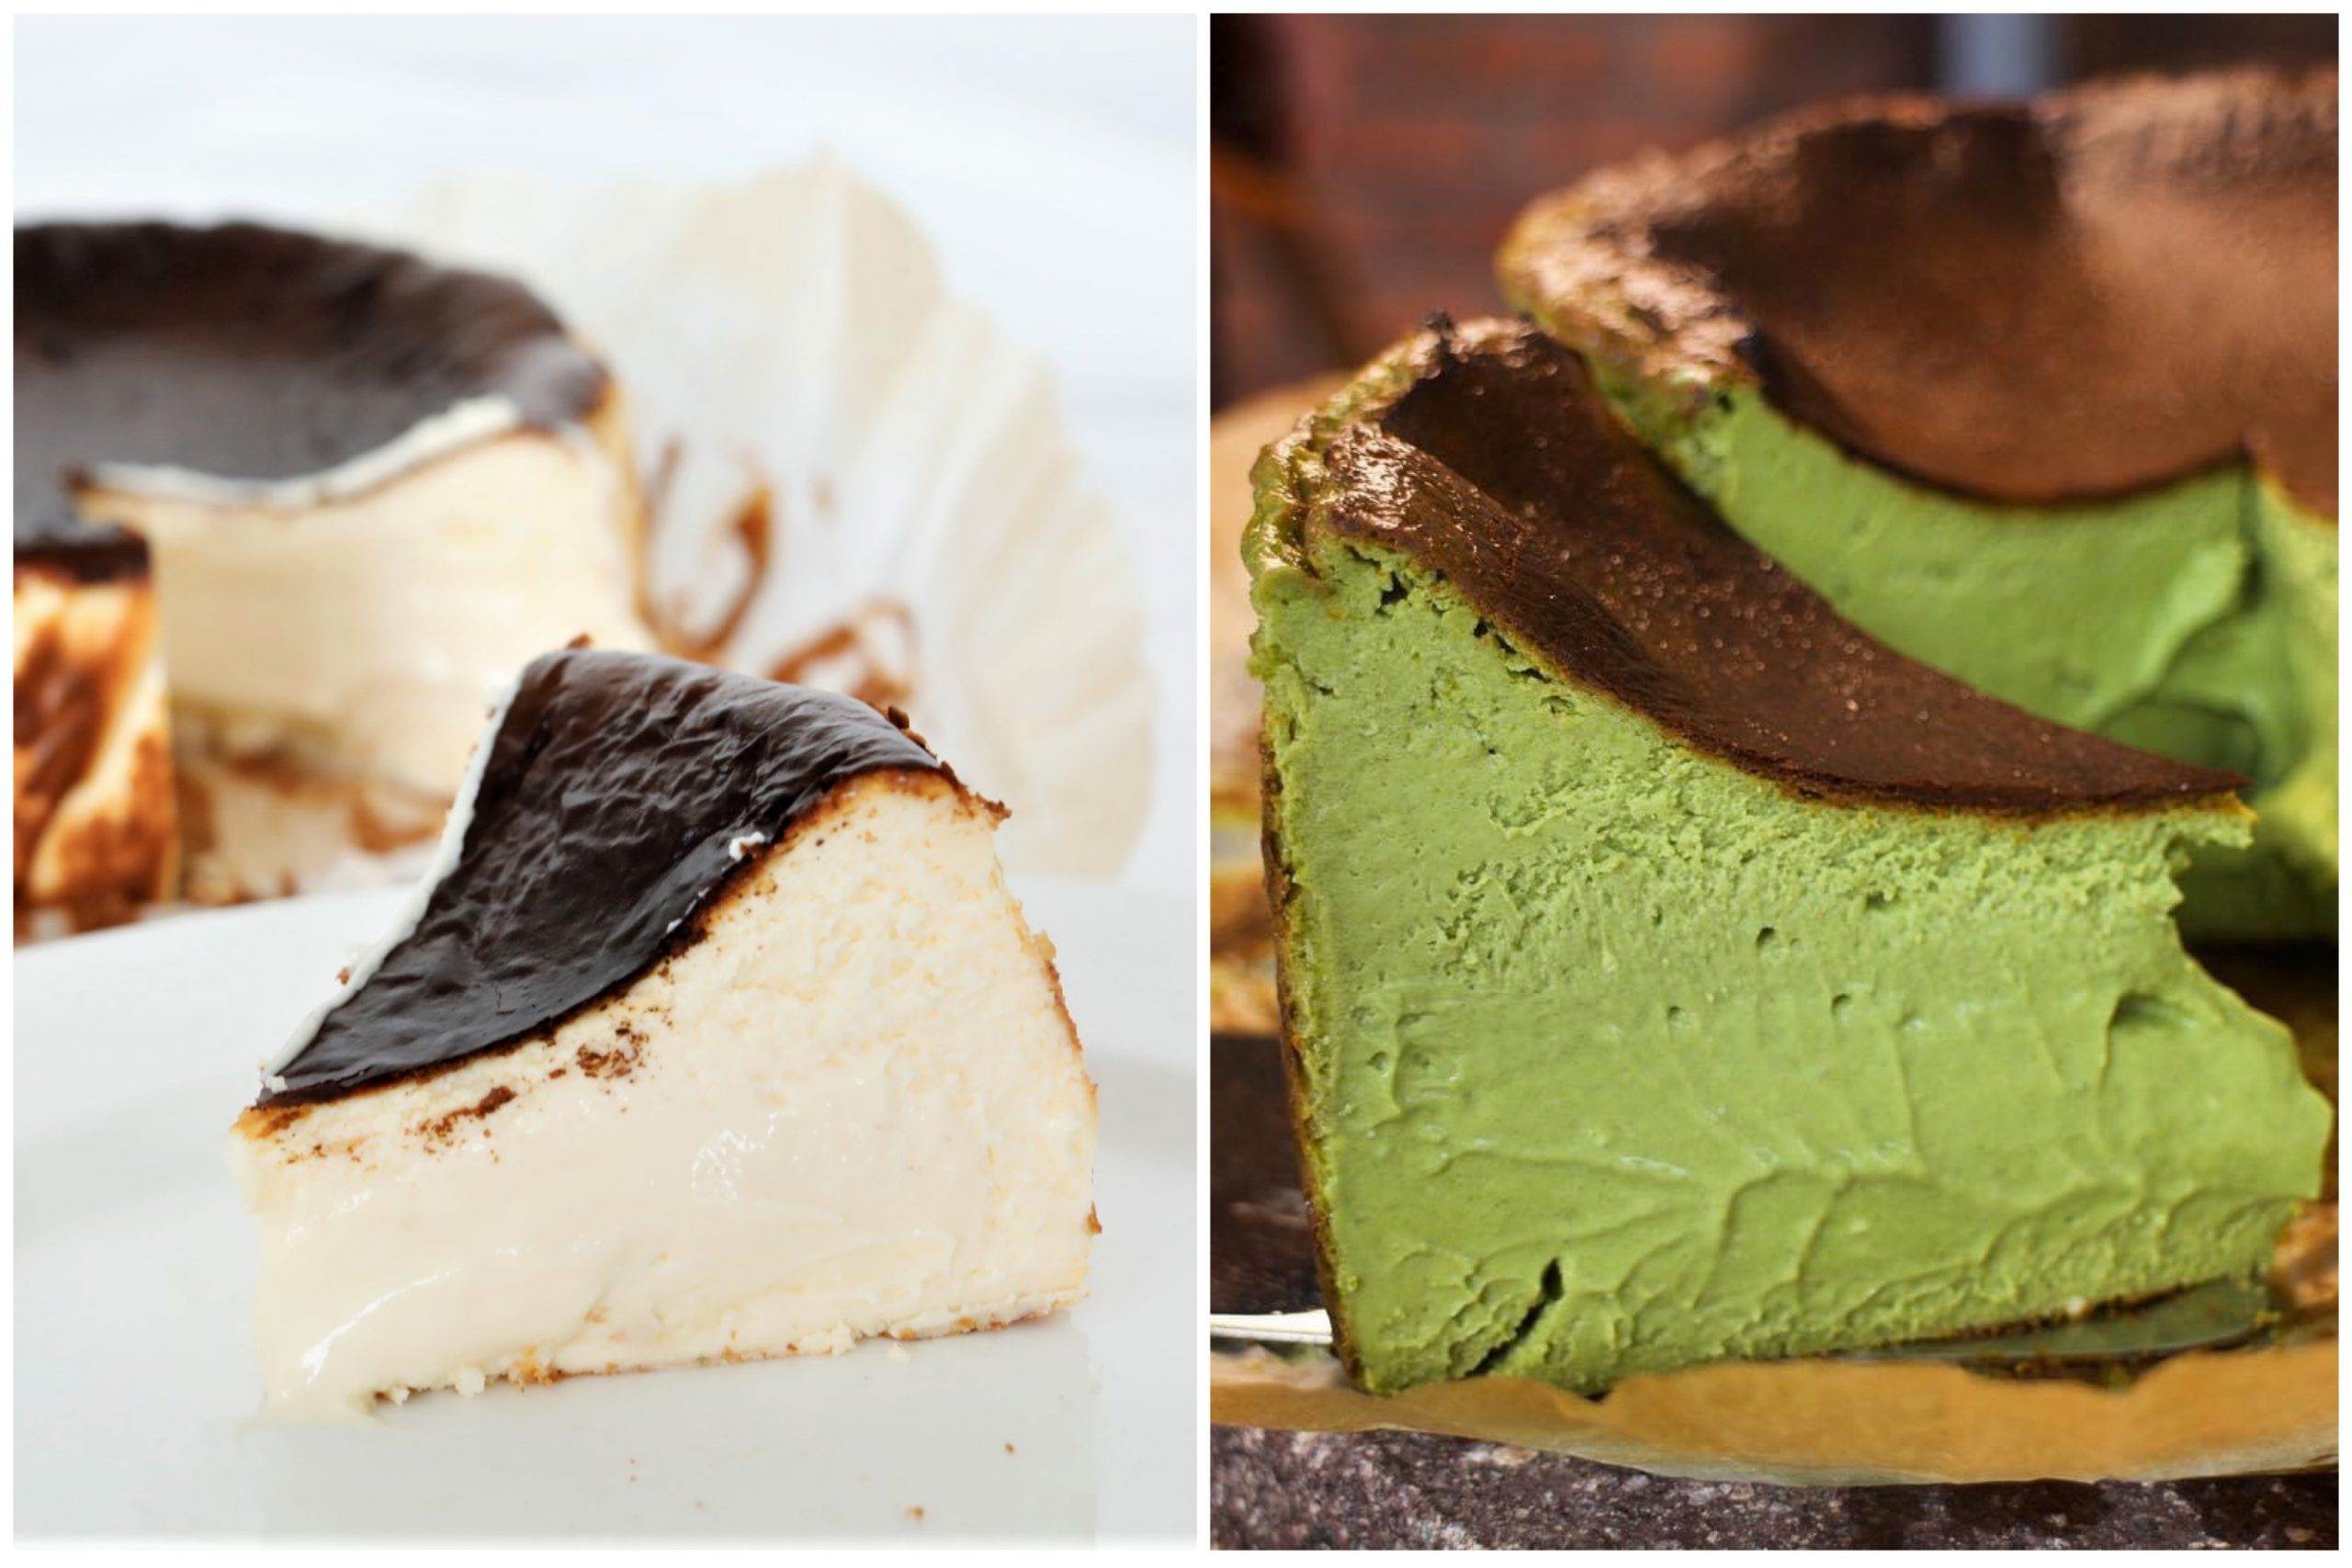 Chalong Soft Creamy Basque Burnt Cheesecake Now With Uji Matcha Version Islandwide Delivery Available Danielfooddiary Com